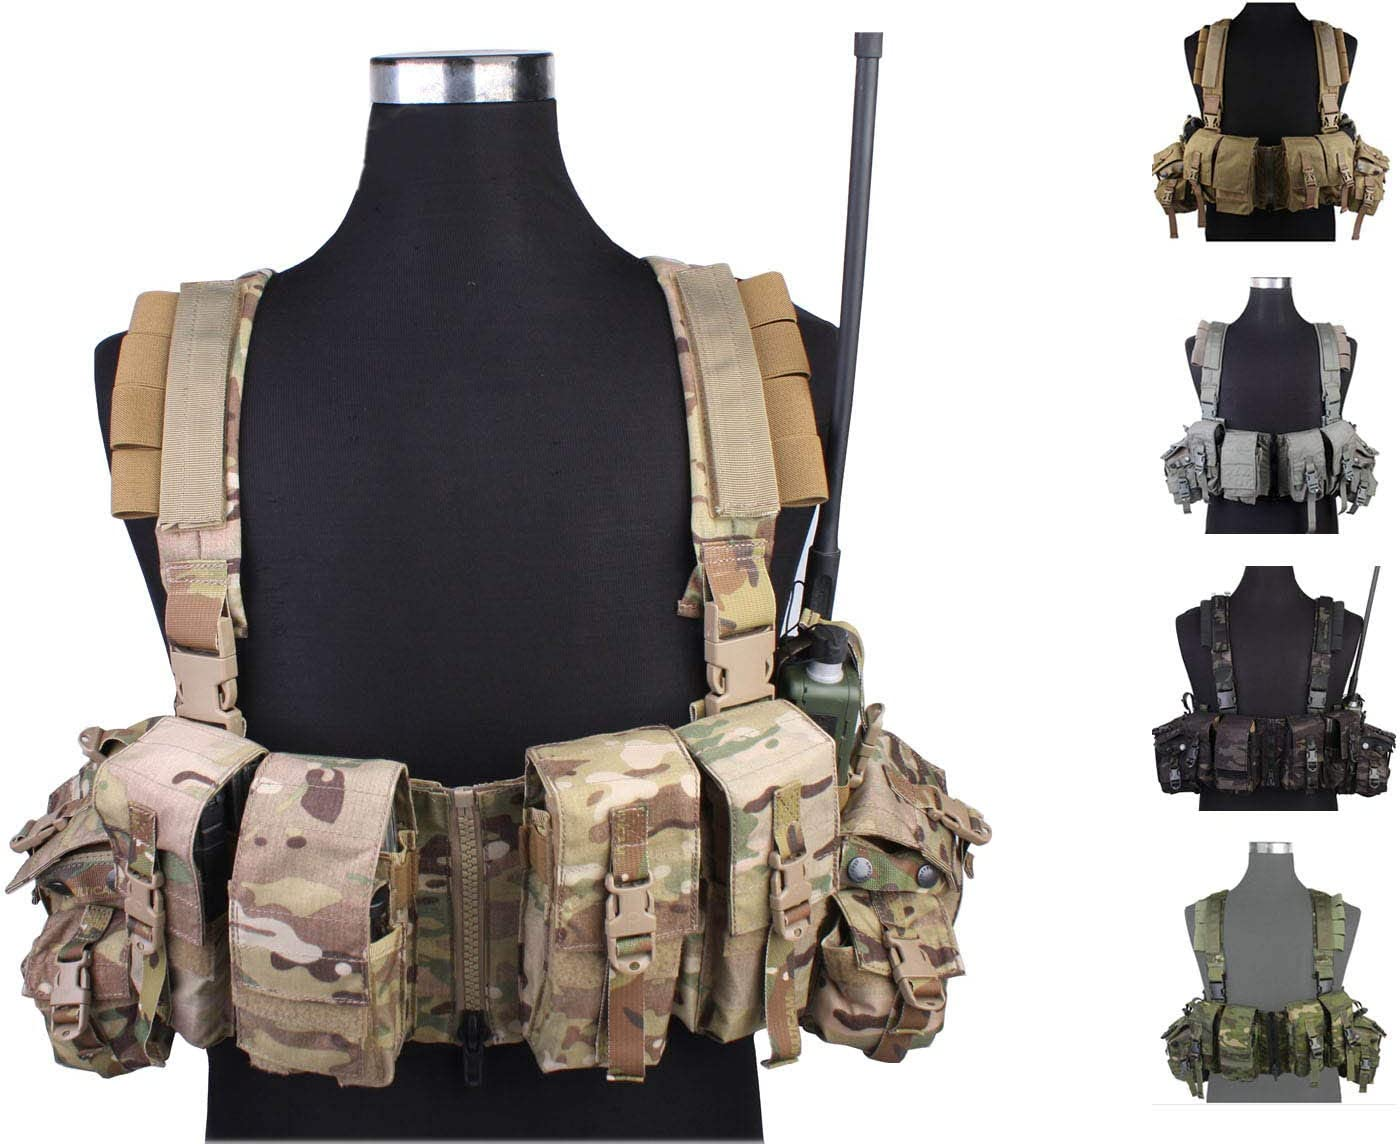 Elite Tribe Airsoft Military Molle Max 71% OFF Combat 1961 Tactical Vest Ranking TOP17 LBT